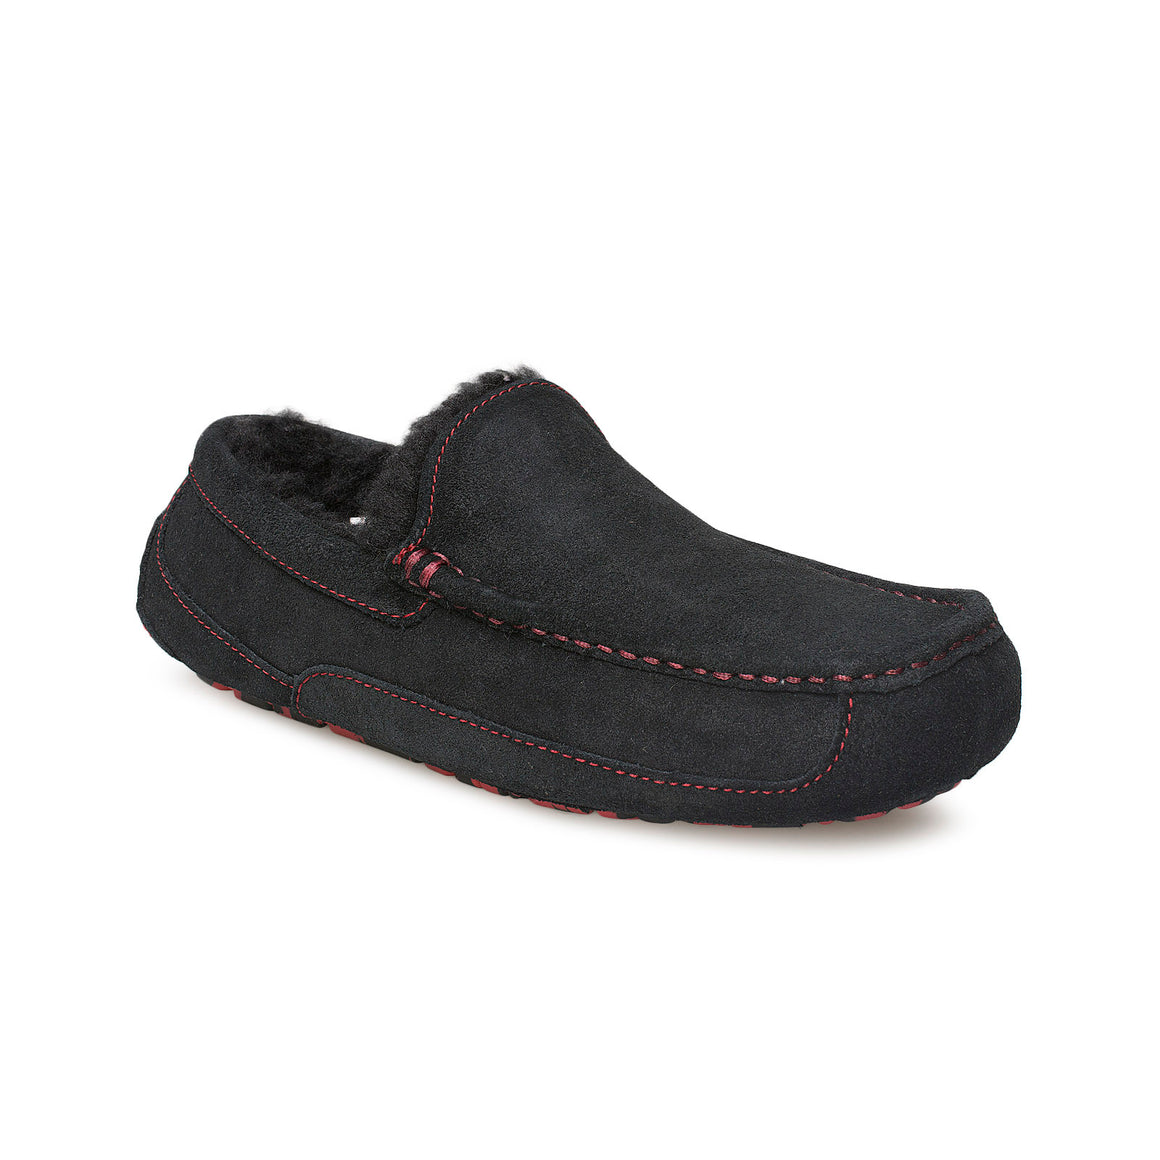 UGG Ascot Black Marble Slippers - Men's